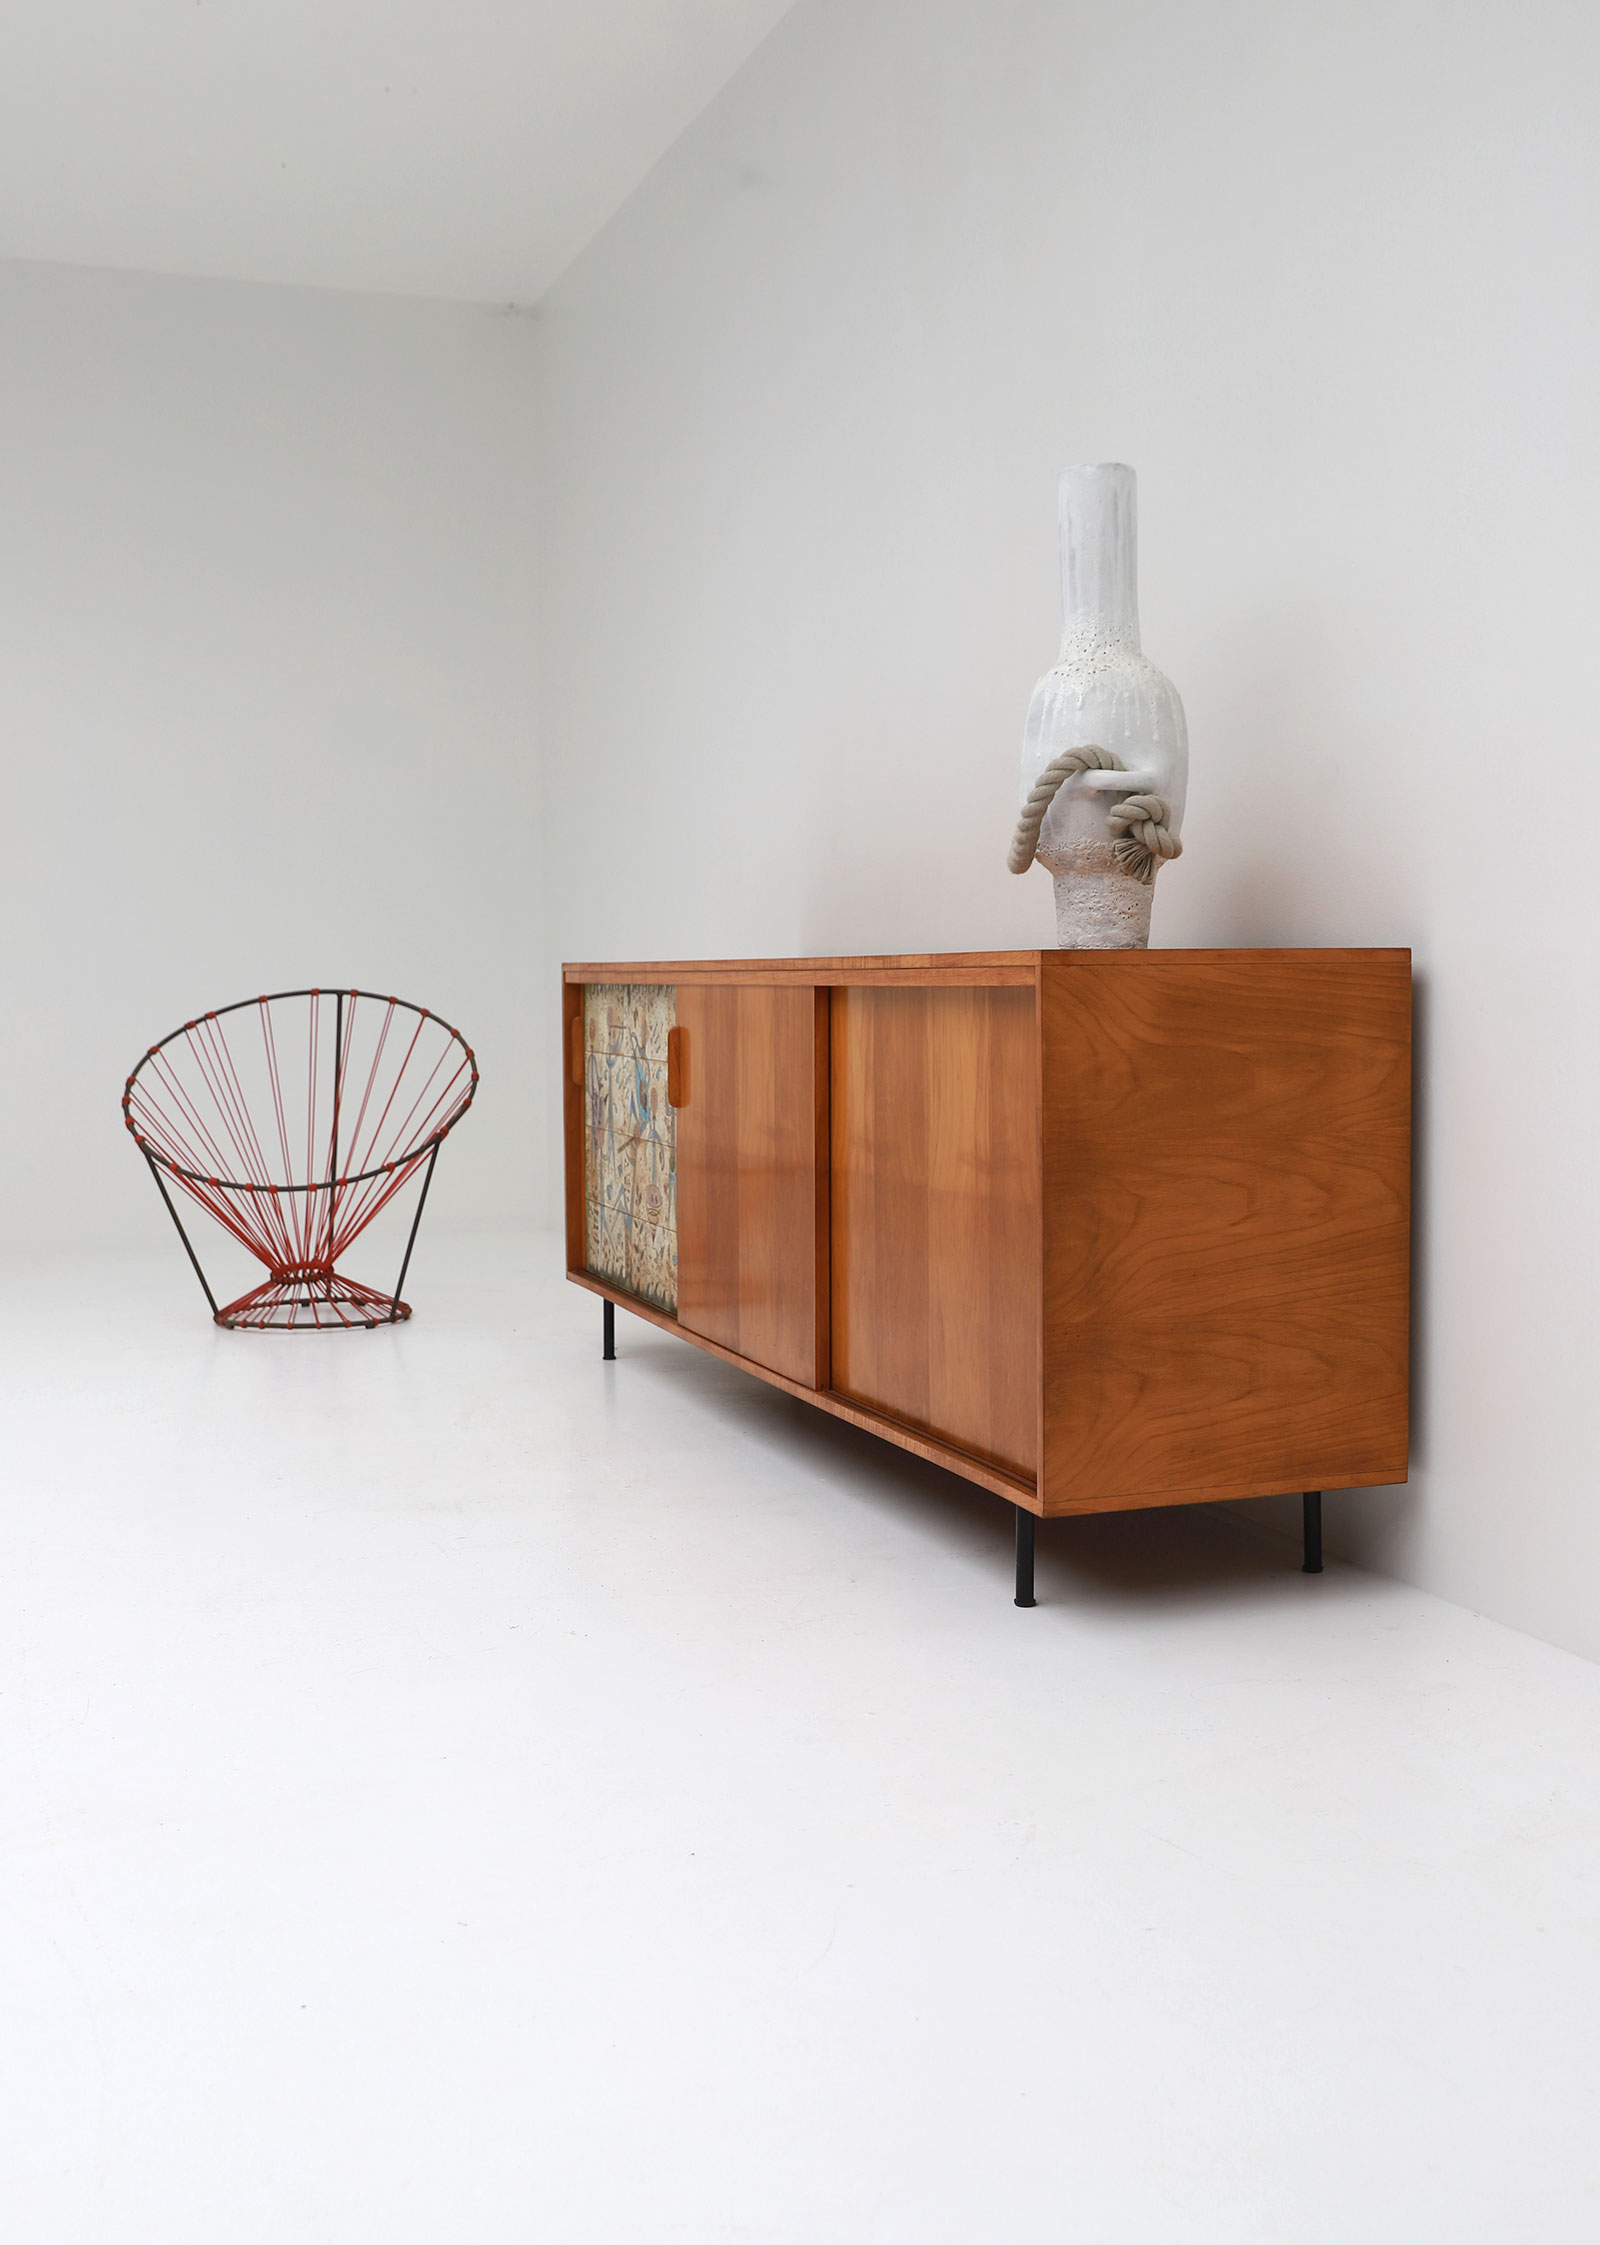 Sideboard with Ceramic Tiles Charles-Emile Pinson 1958image 8